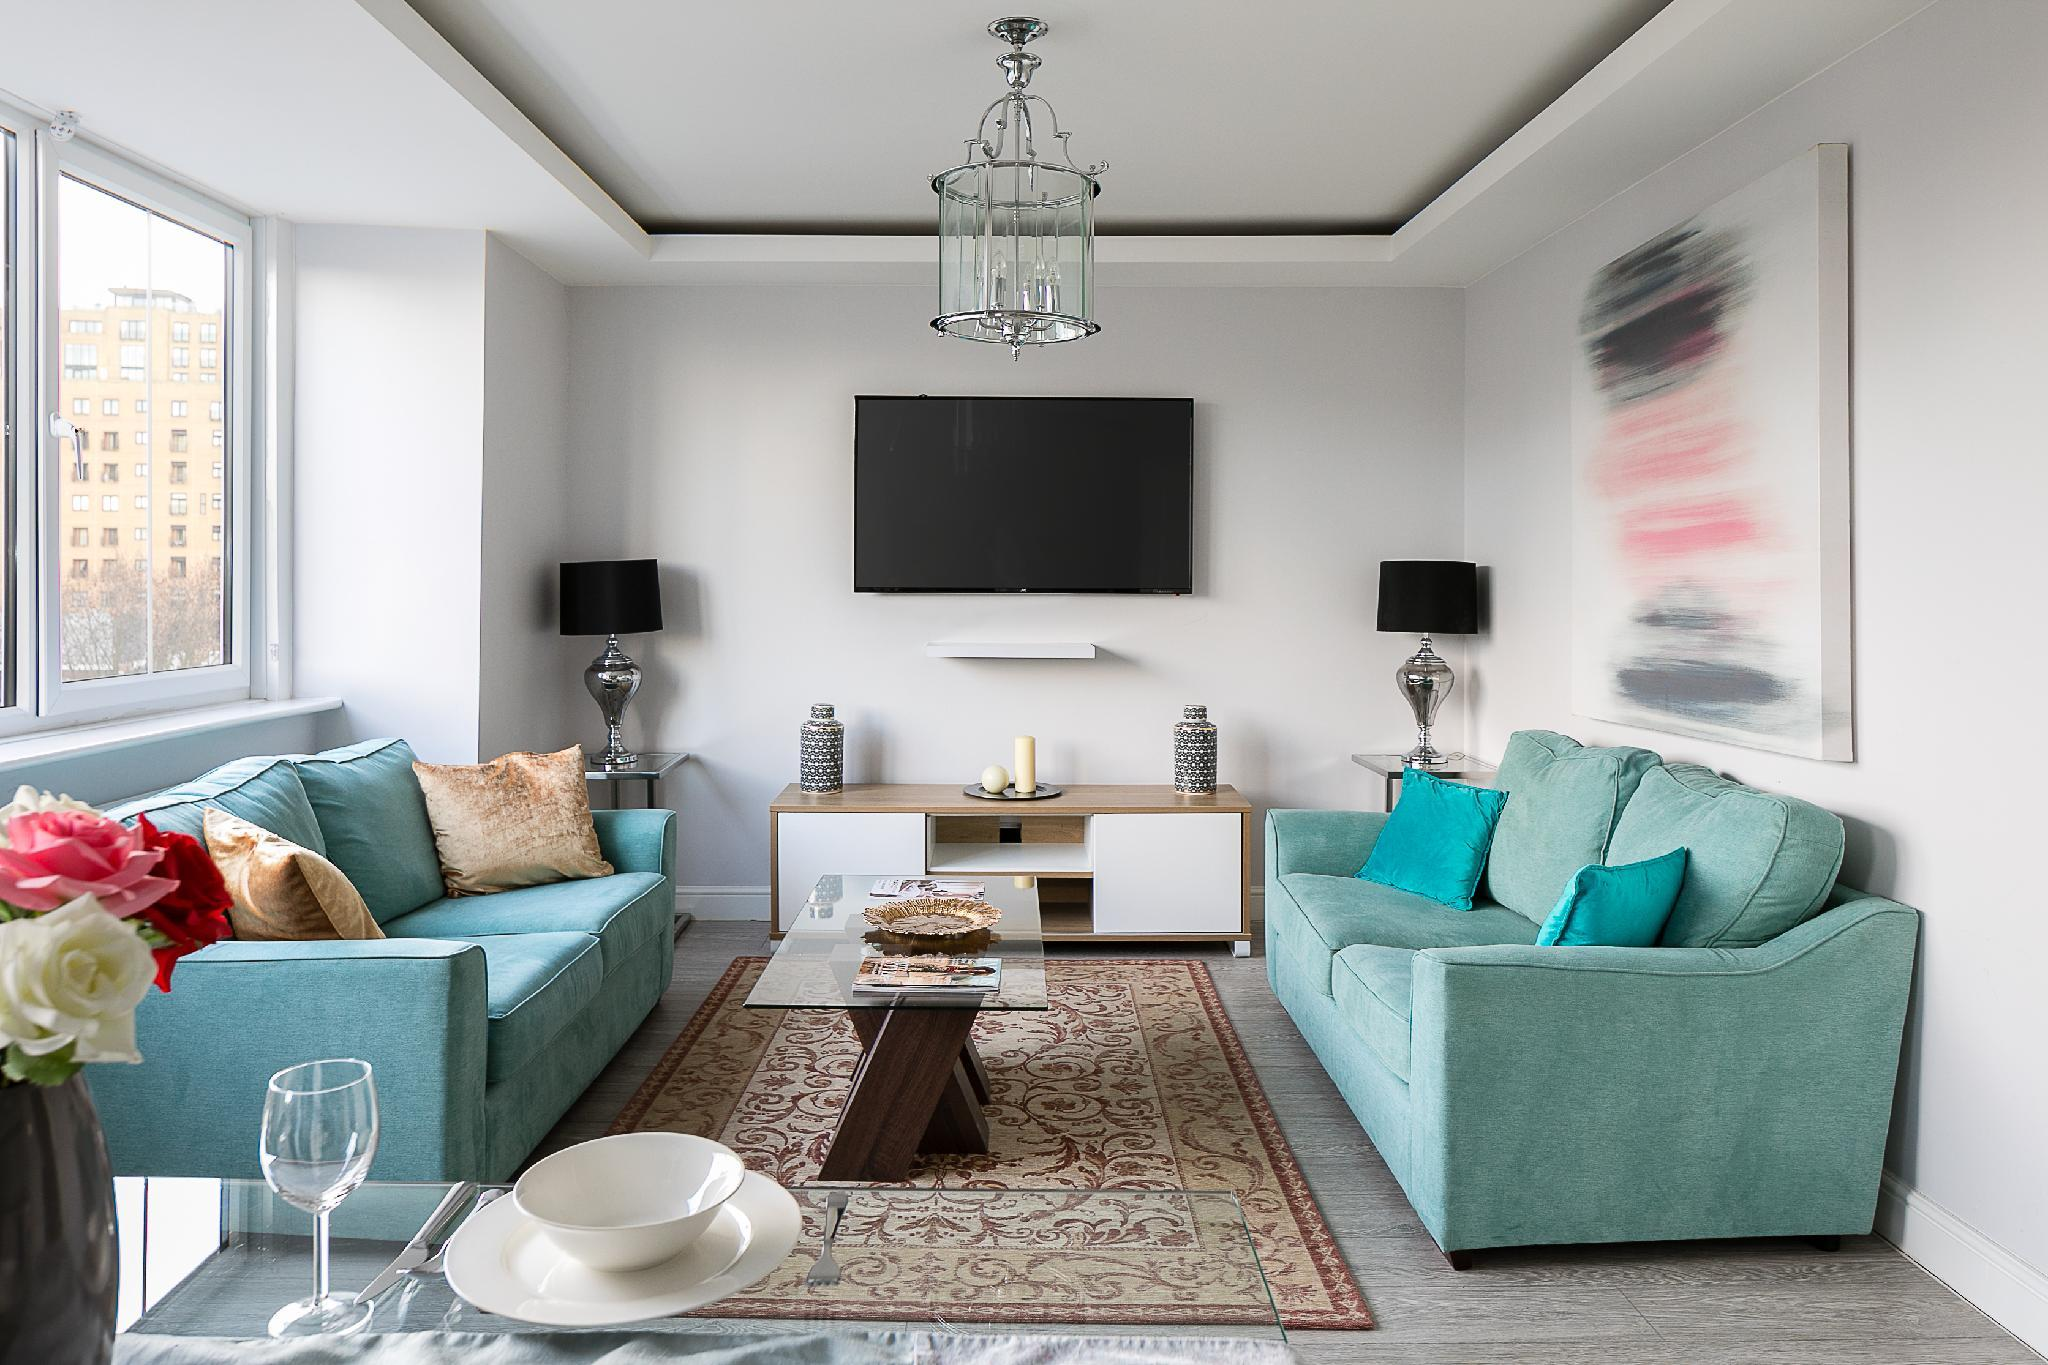 Penthouse brand new on Cromwell road